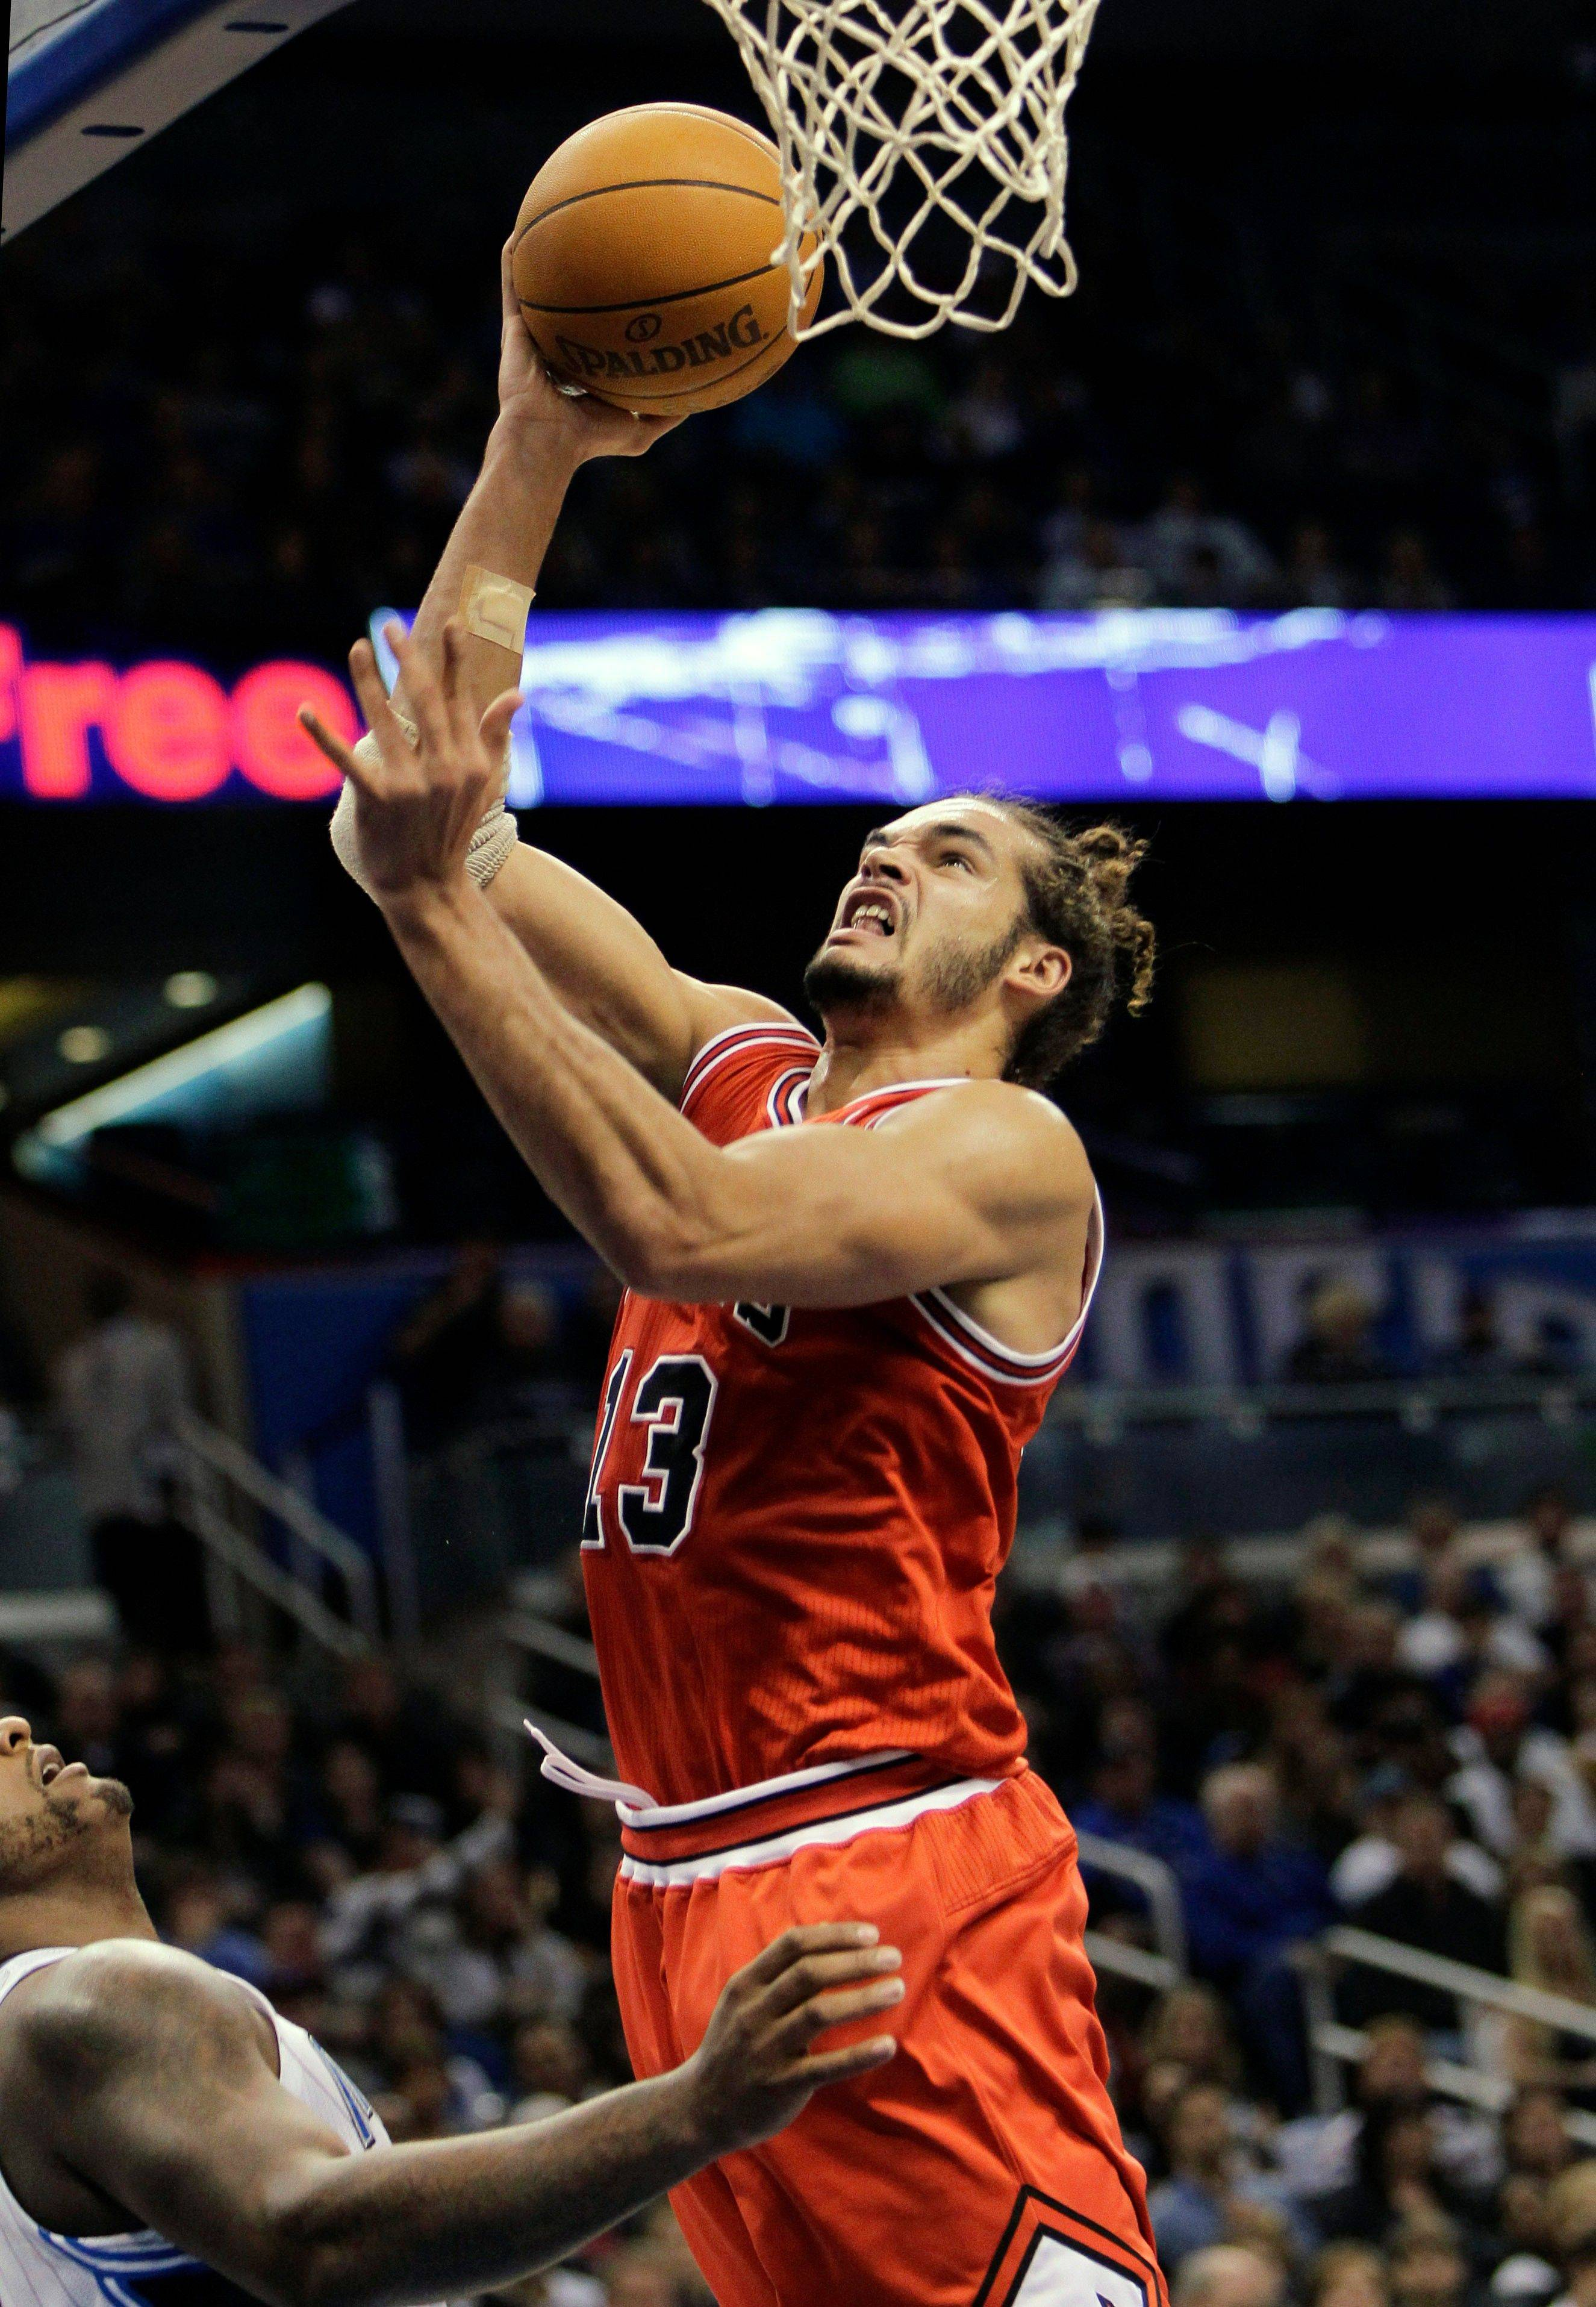 The Bulls' Joakim Noah shoots over Orlando Magic's Glen Davis, left, earlier this season.